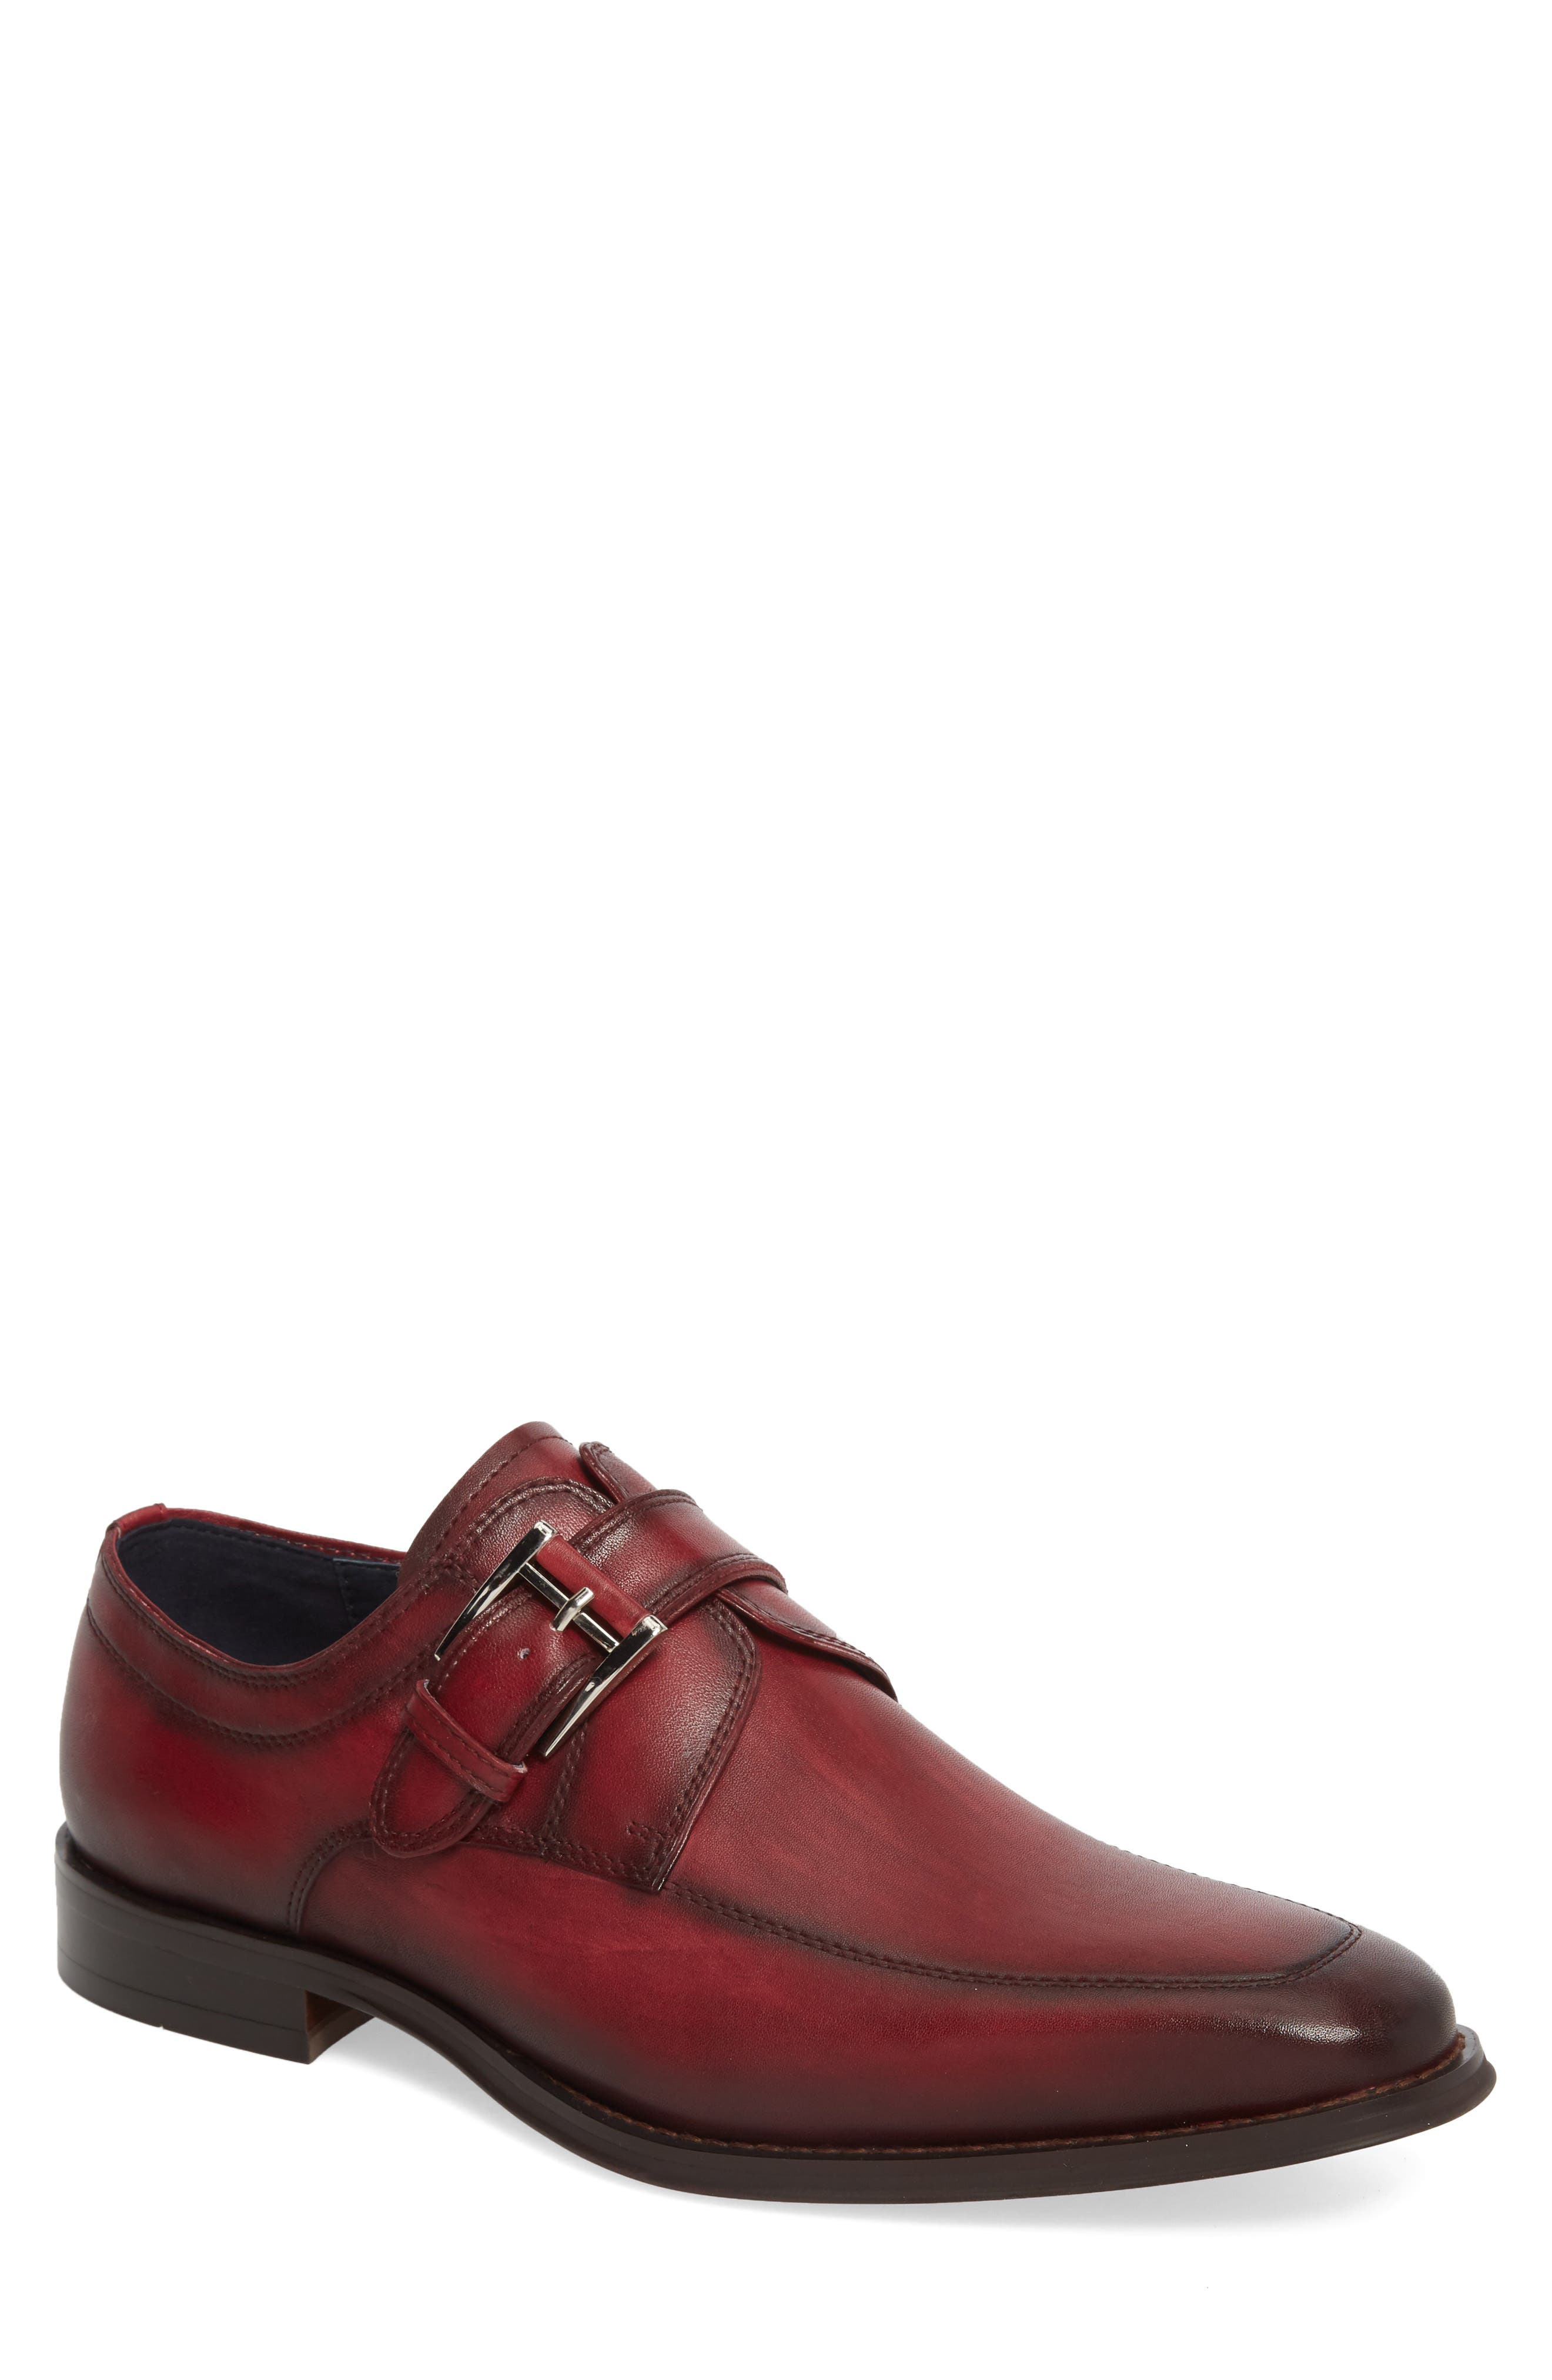 Jump Men's Merlot Single Buckle Monk Shoe wzf4zhBz6